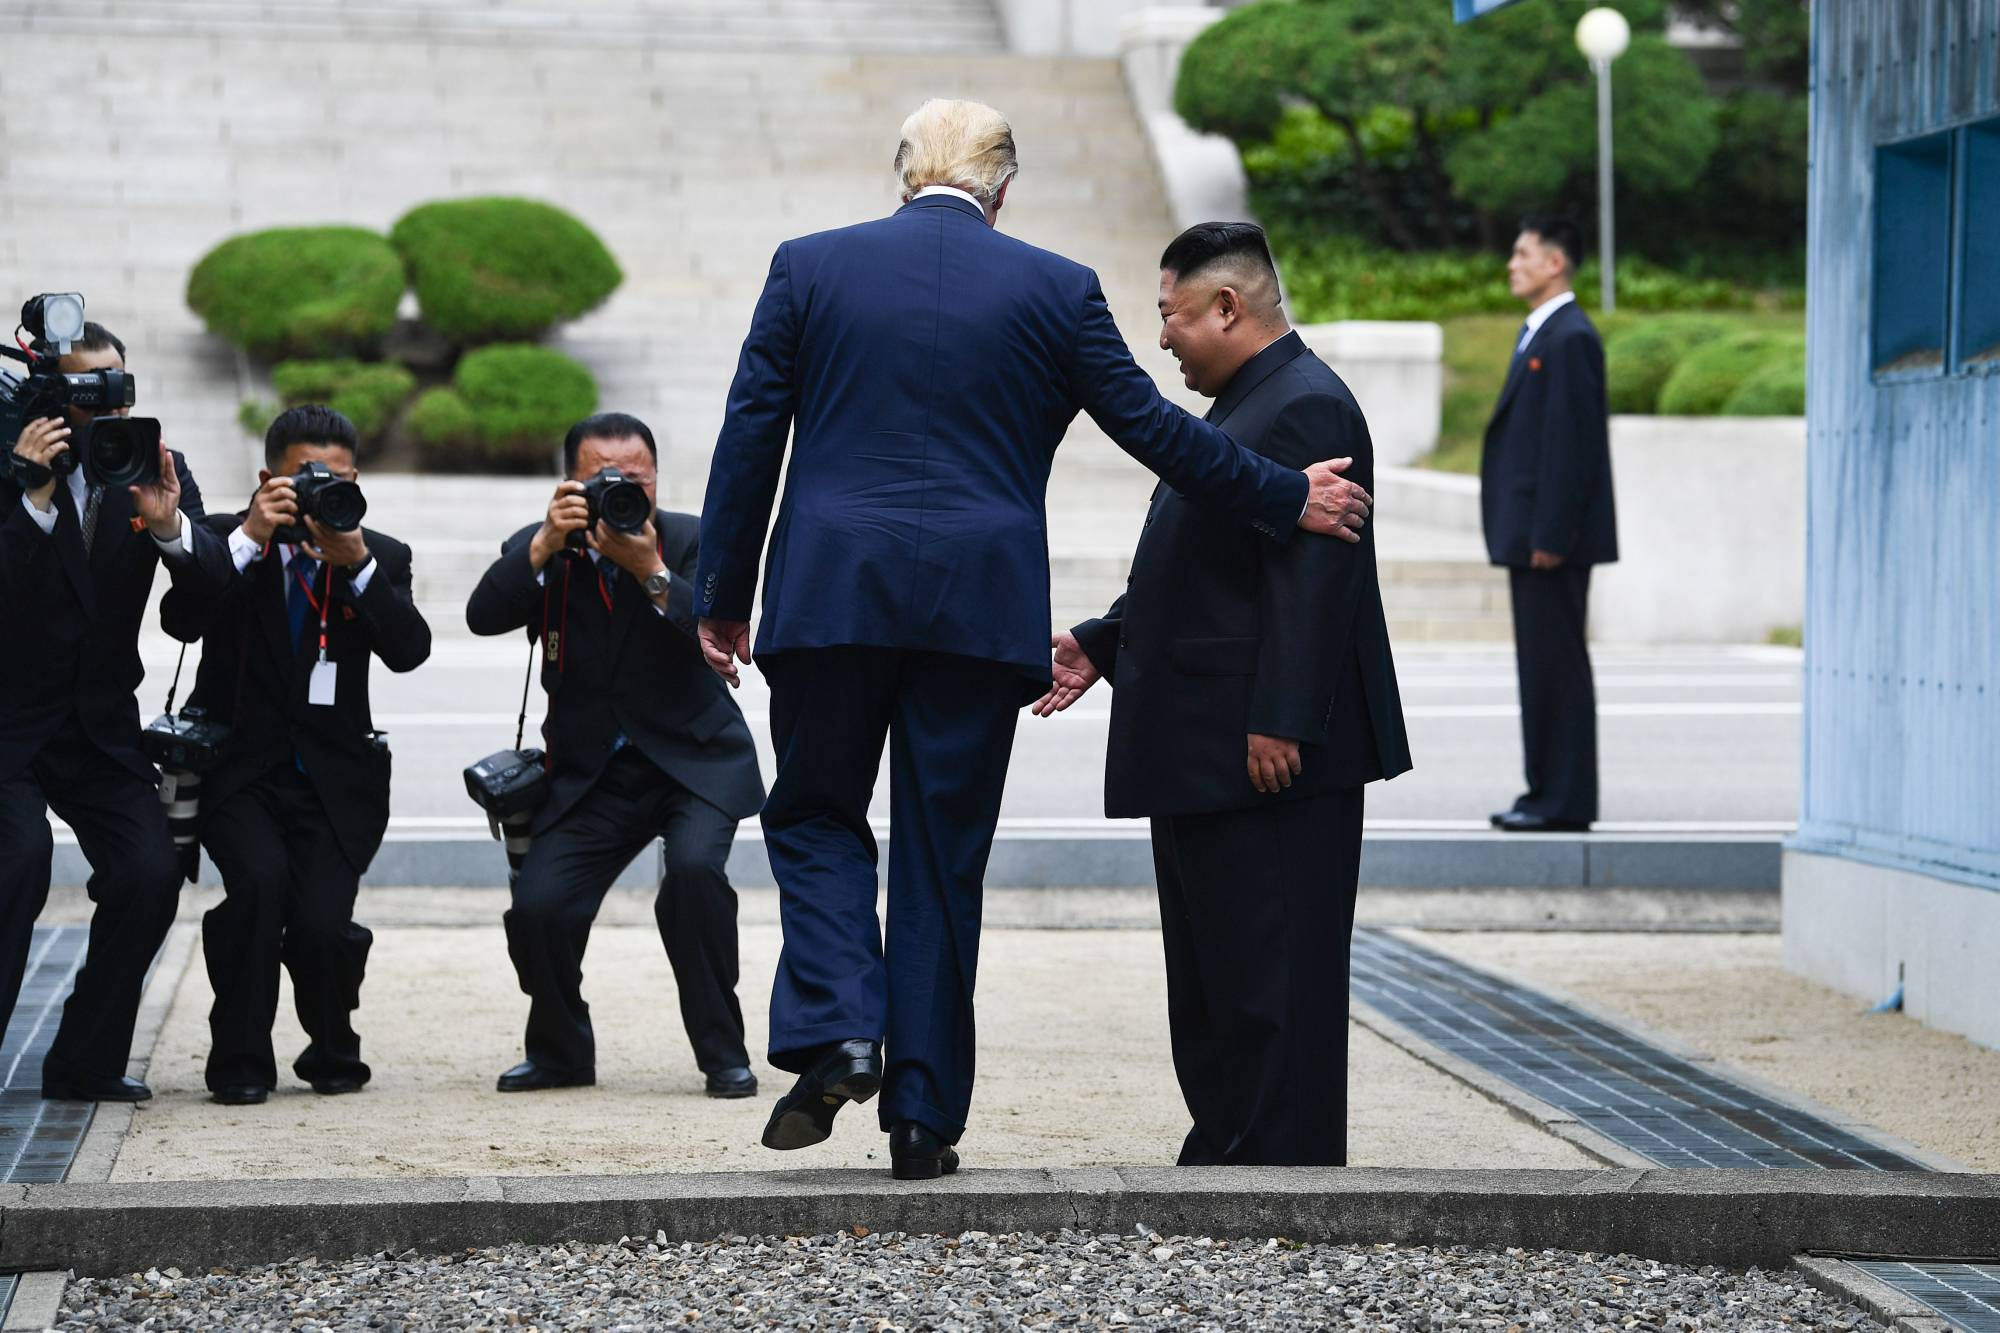 U.S. President Donald Trump steps into the northern side of the Military Demarcation Line that divides North and South Korea, as North Korean leader Kim Jong Un looks on, in the Joint Security Area of Panmunjom in the demilitarized zone, on June 30, 2019. | AFP-JIJI